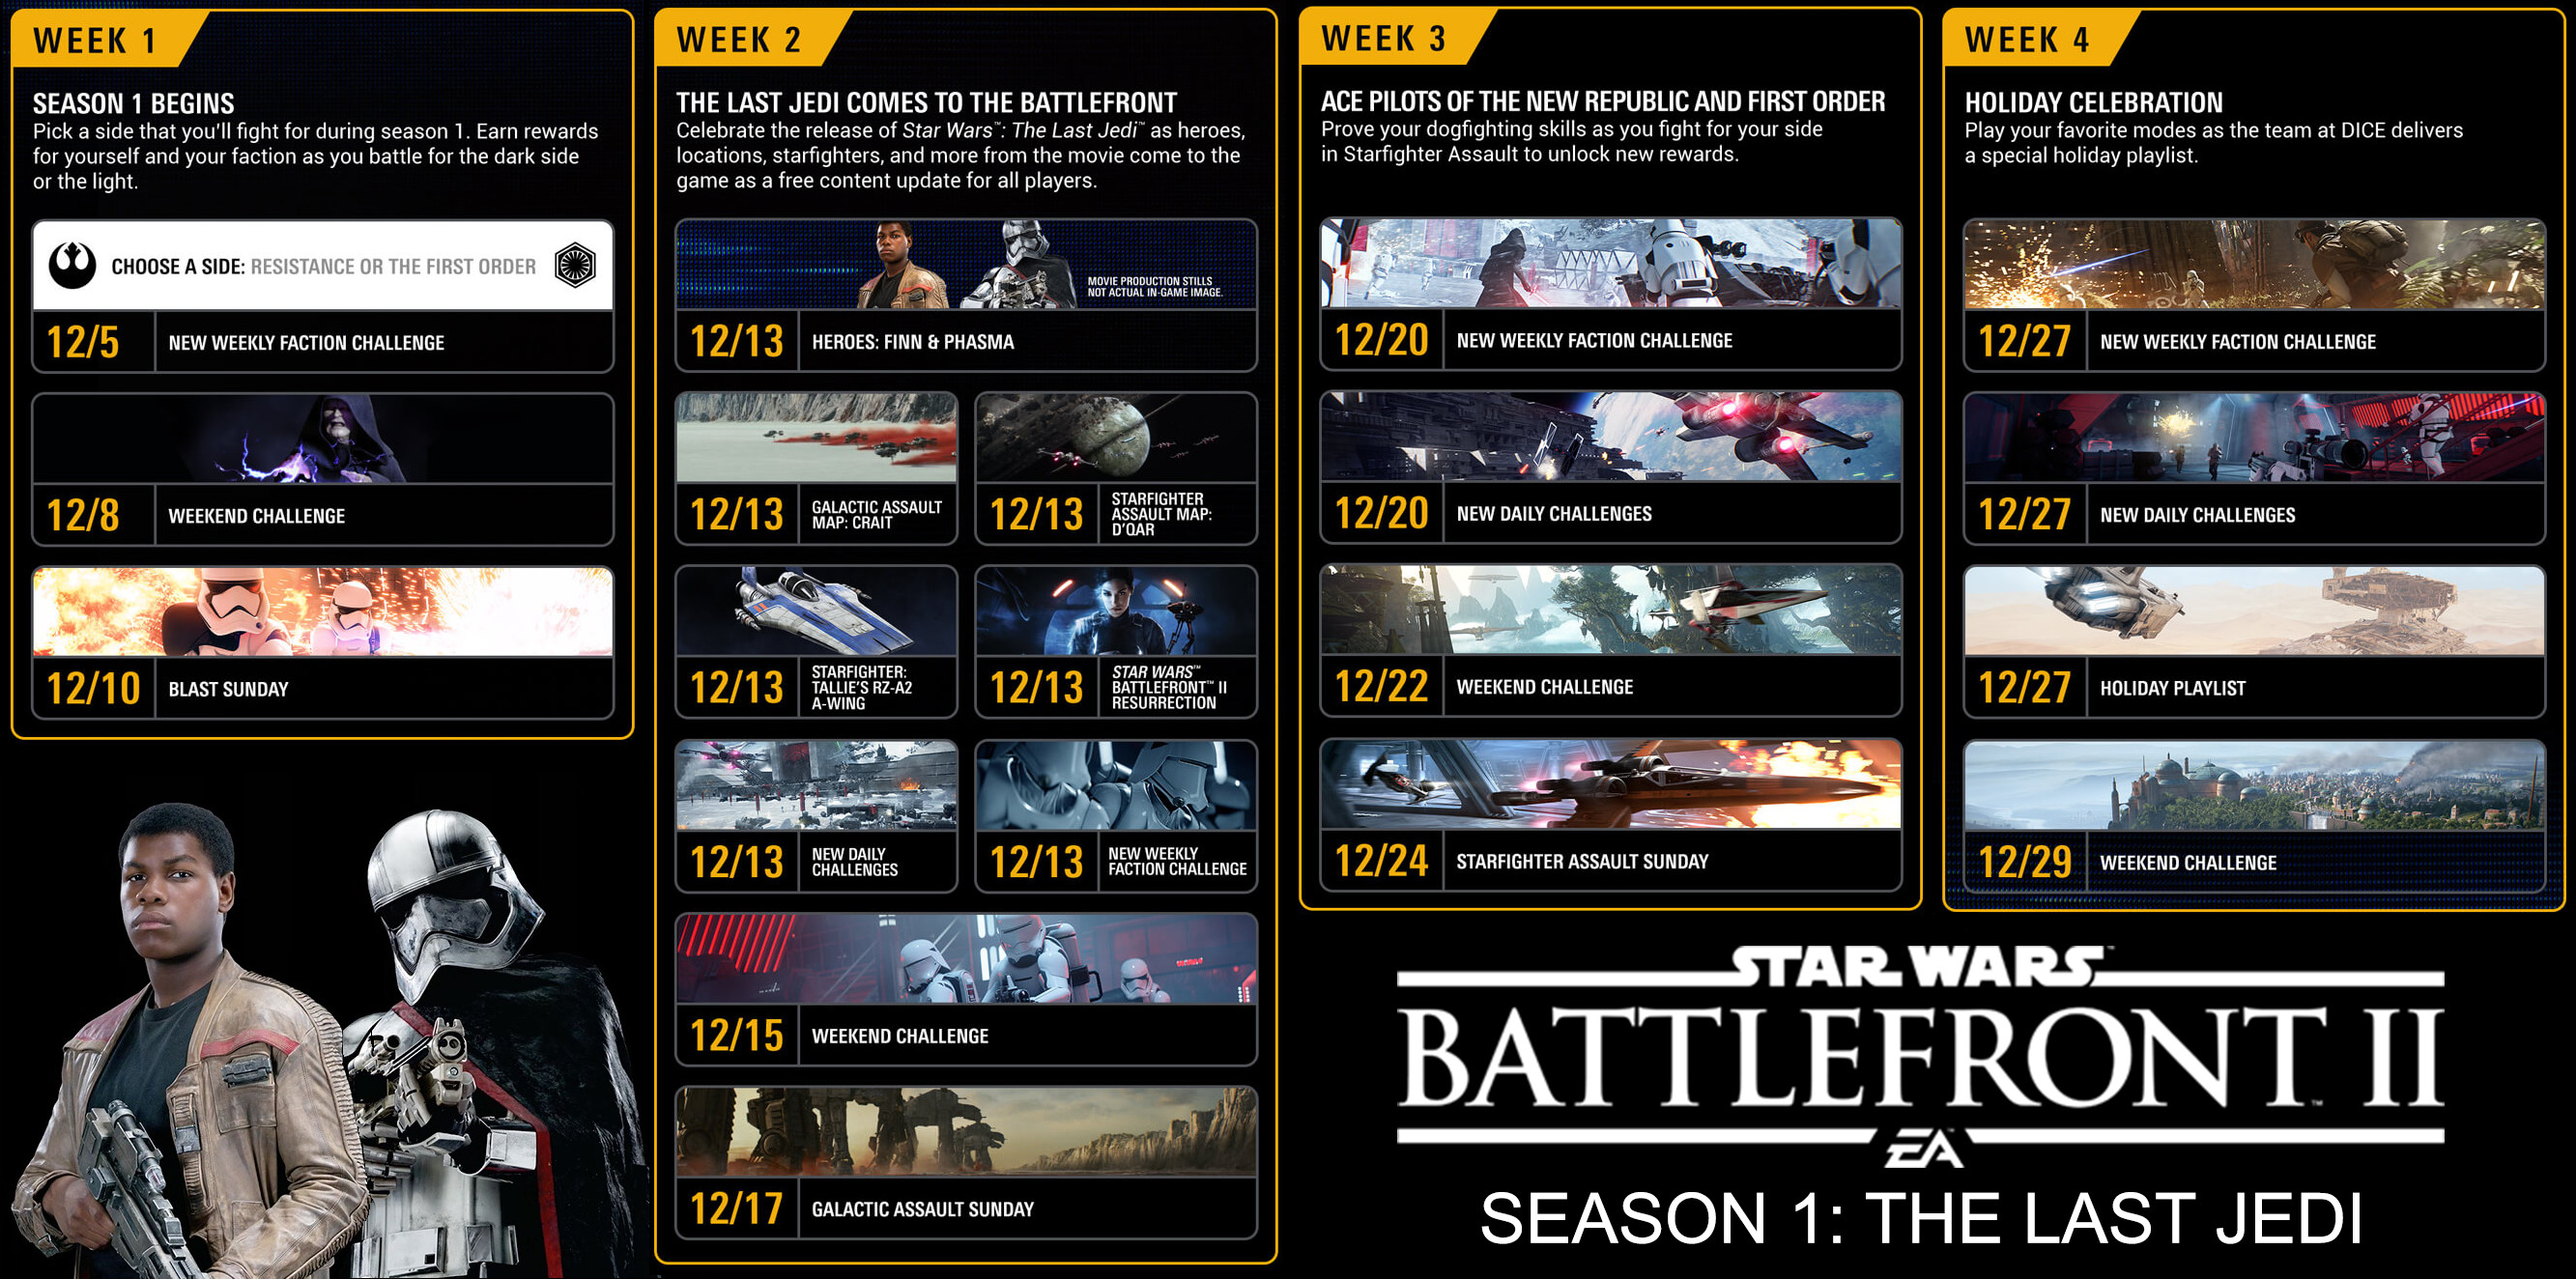 Calendrier Star Wars 2019.Star Wars Battlefront 2 The Last Jedi Content Calendar For